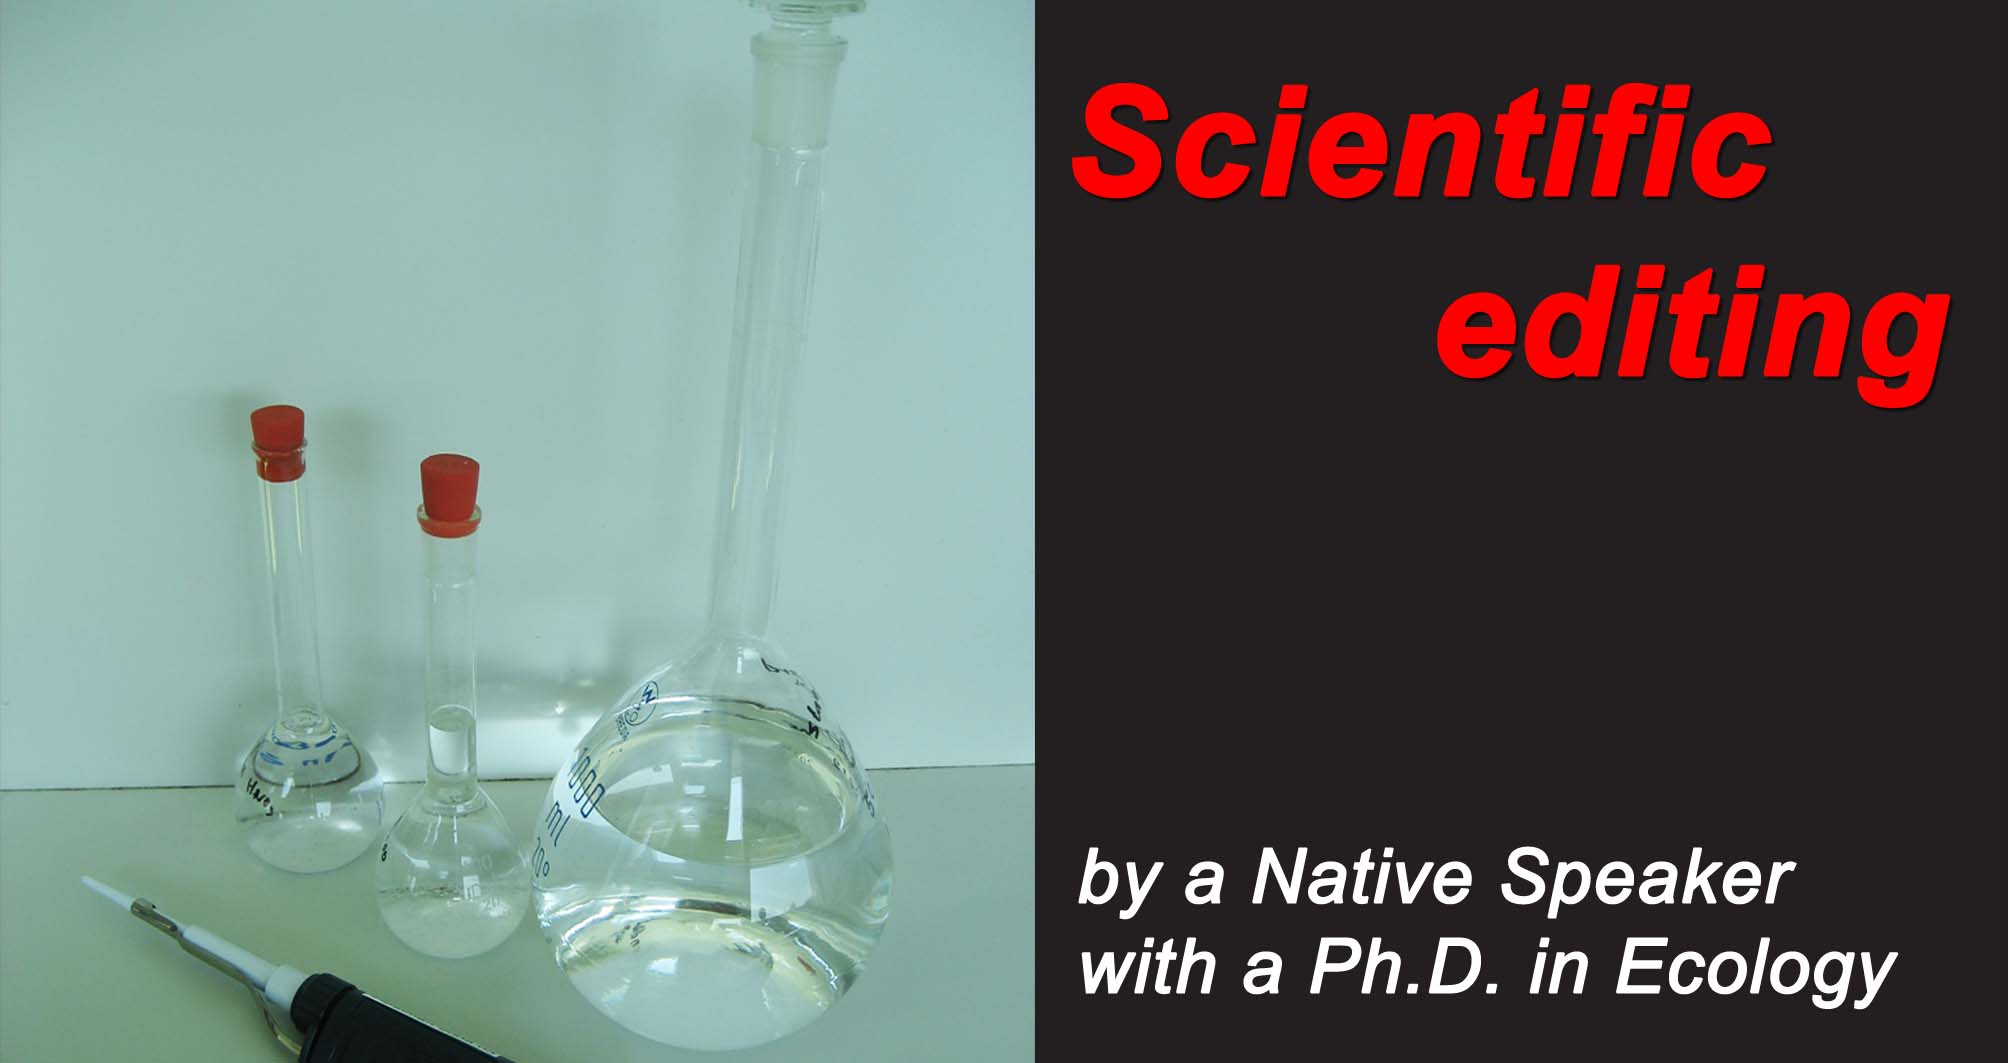 Scientific editing by a Ph.D. in Ecology